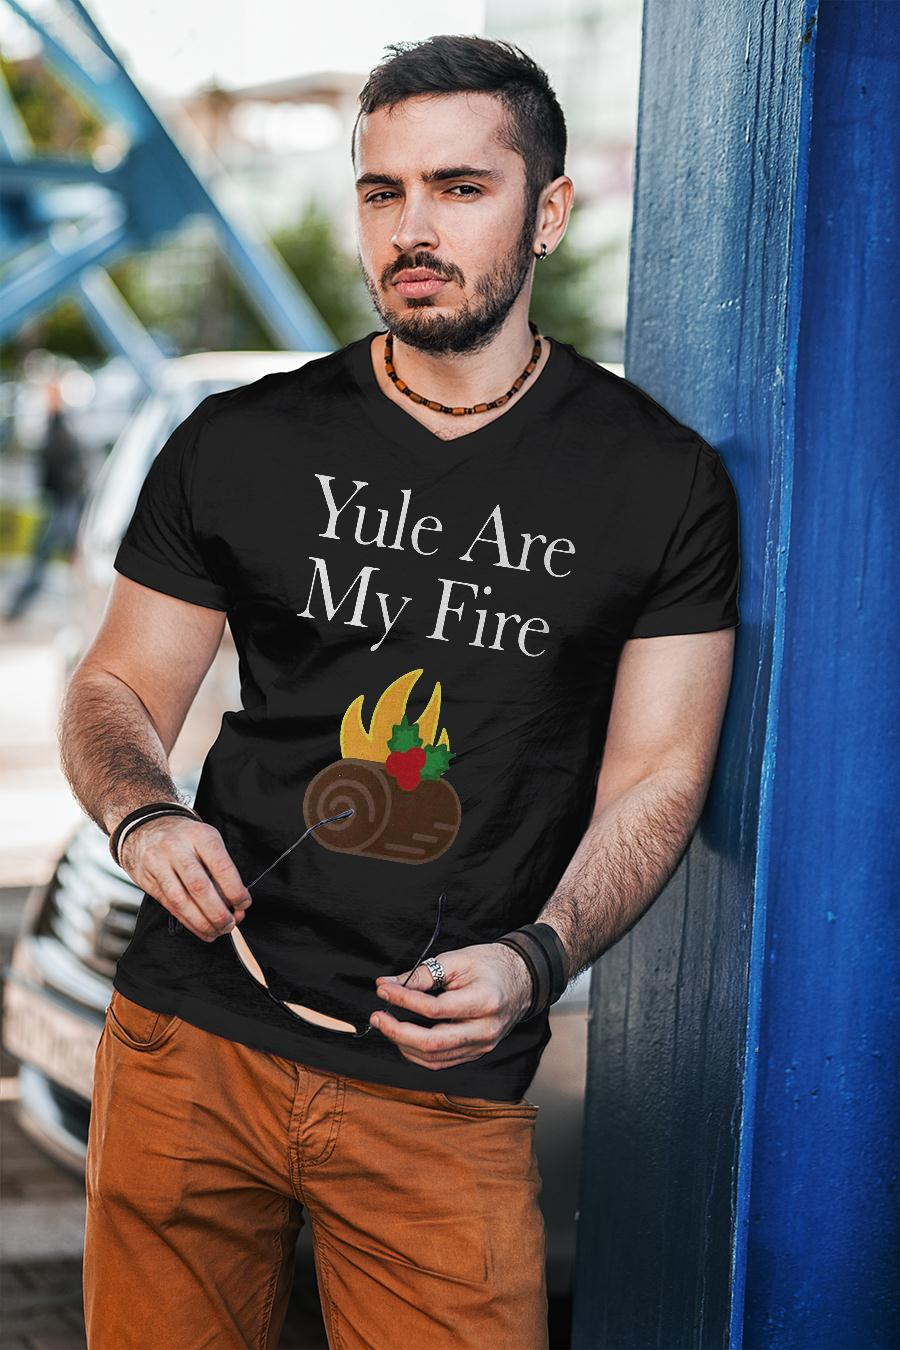 Yule are my fire ShirtVintage Tats and Cats Men TShirt unisex